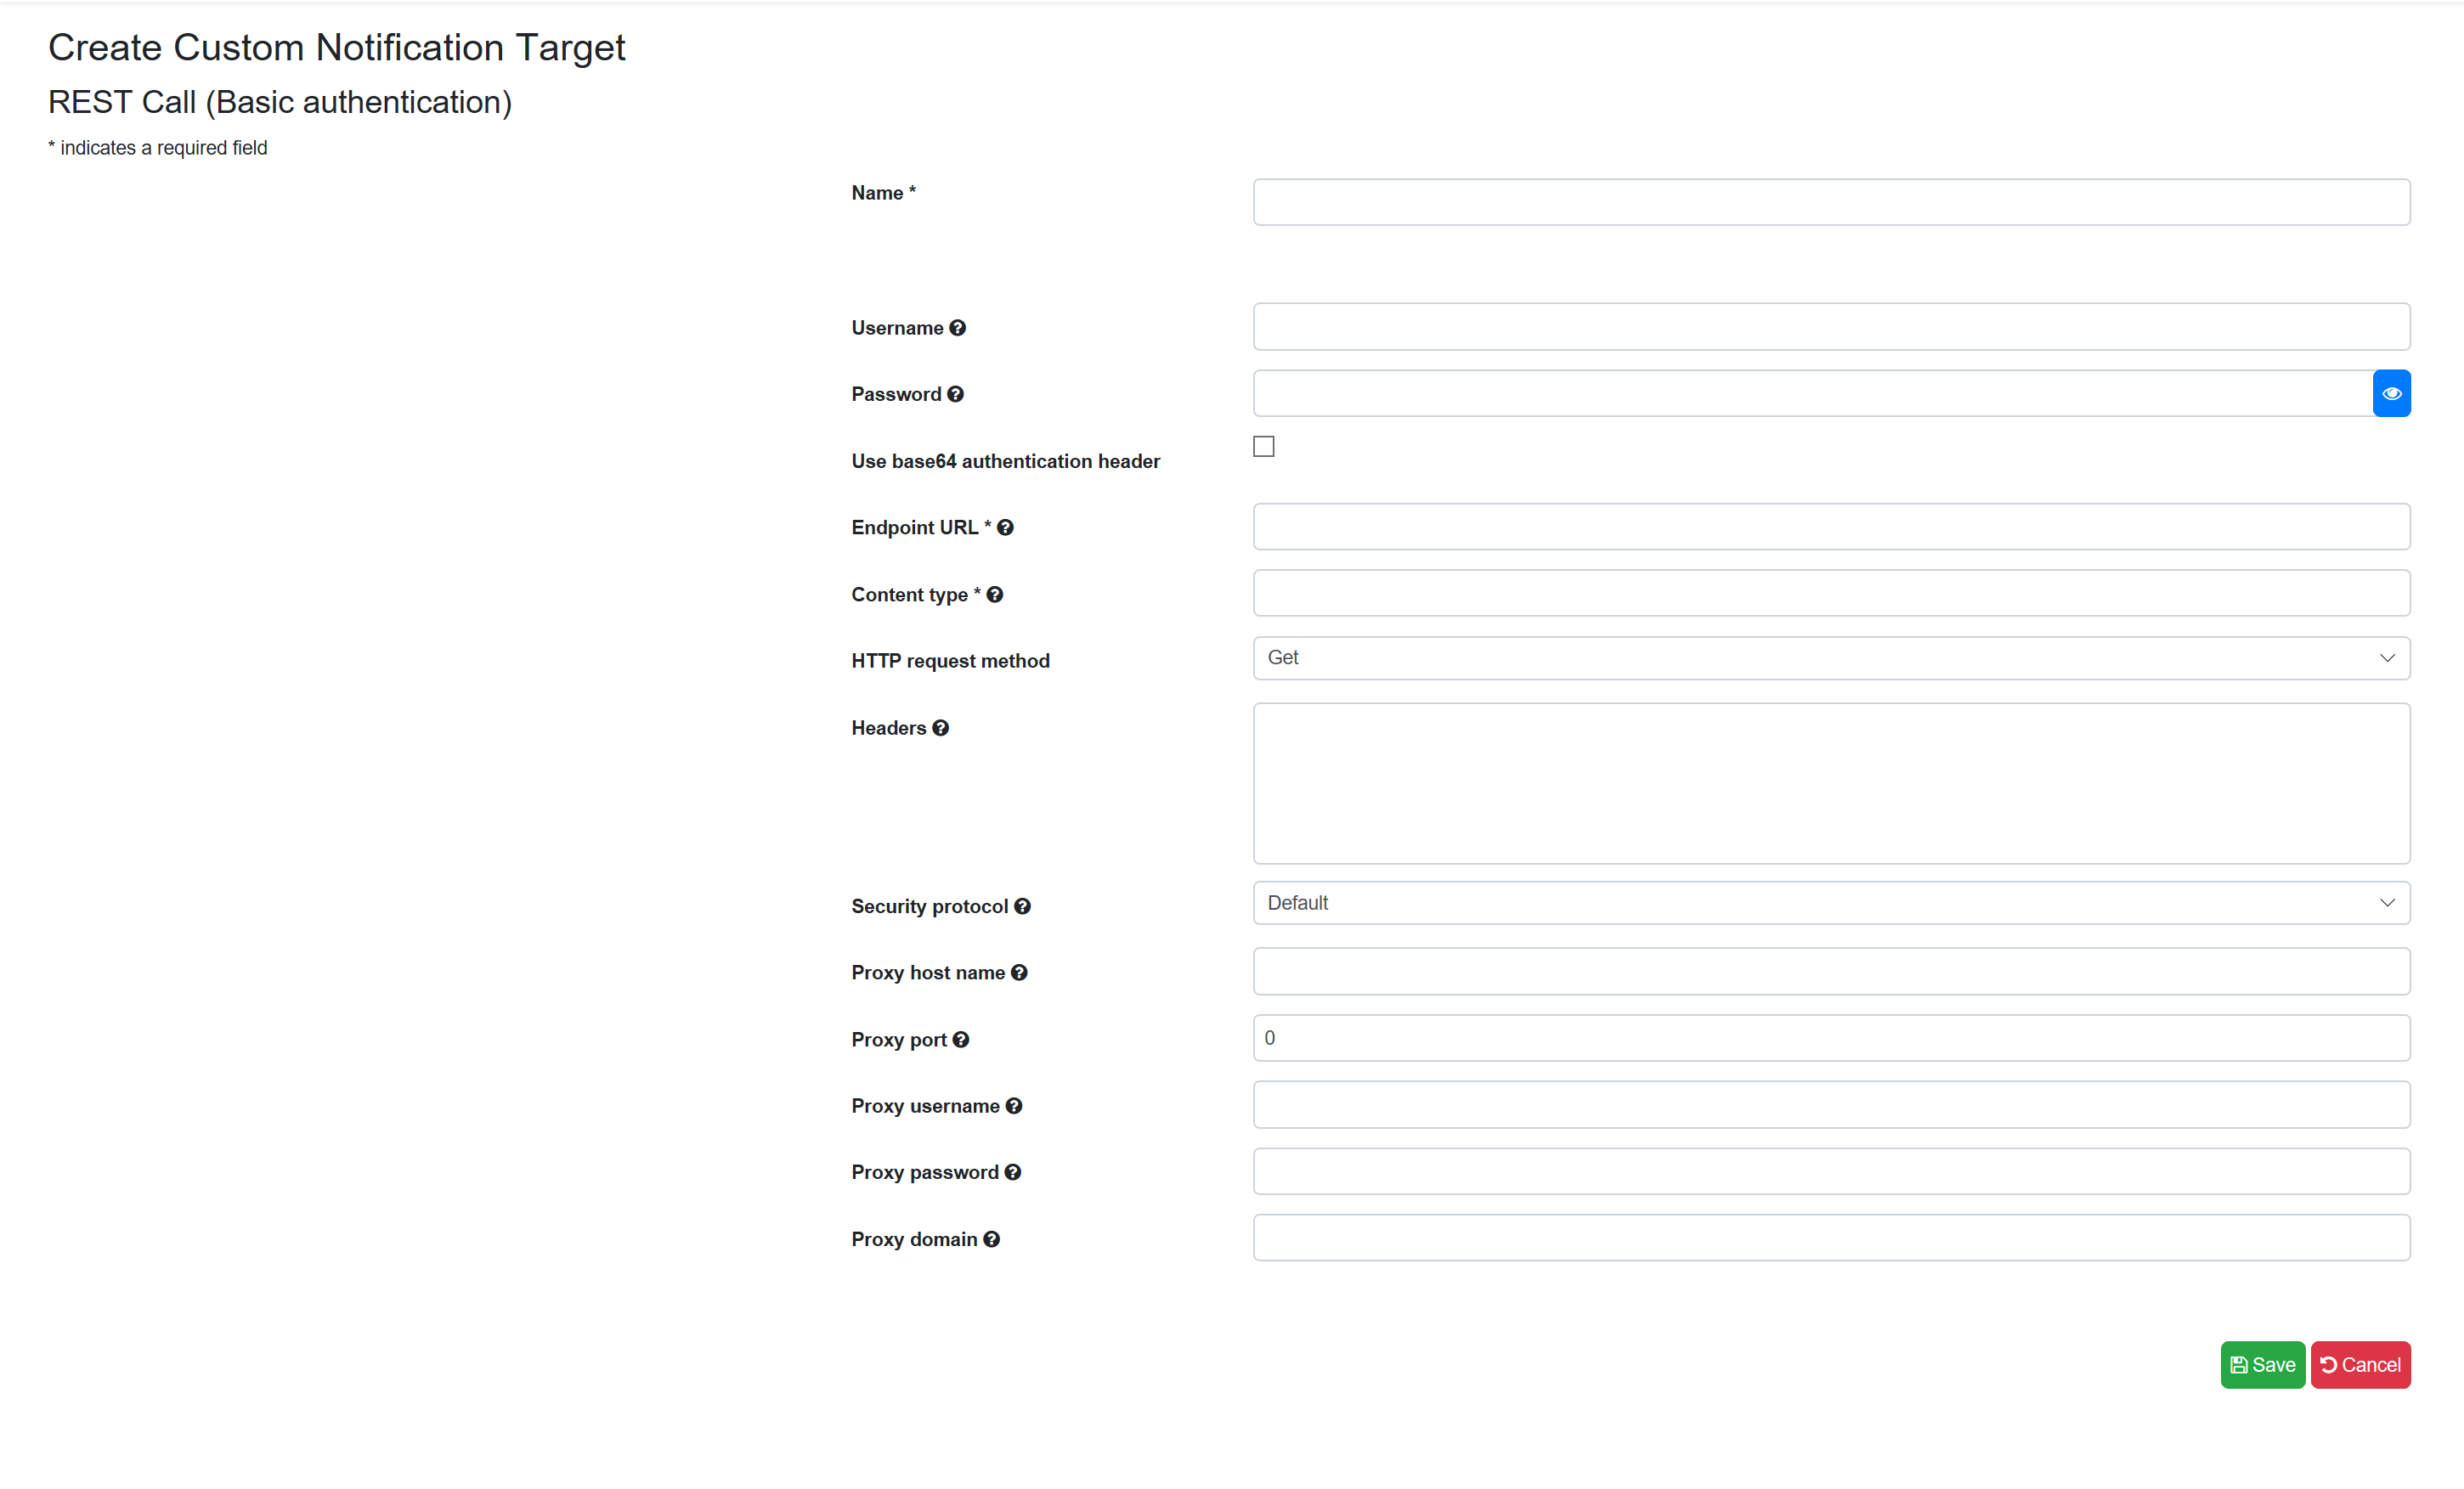 SentryOne Test Create REST Call (Basic Authentication) Target form